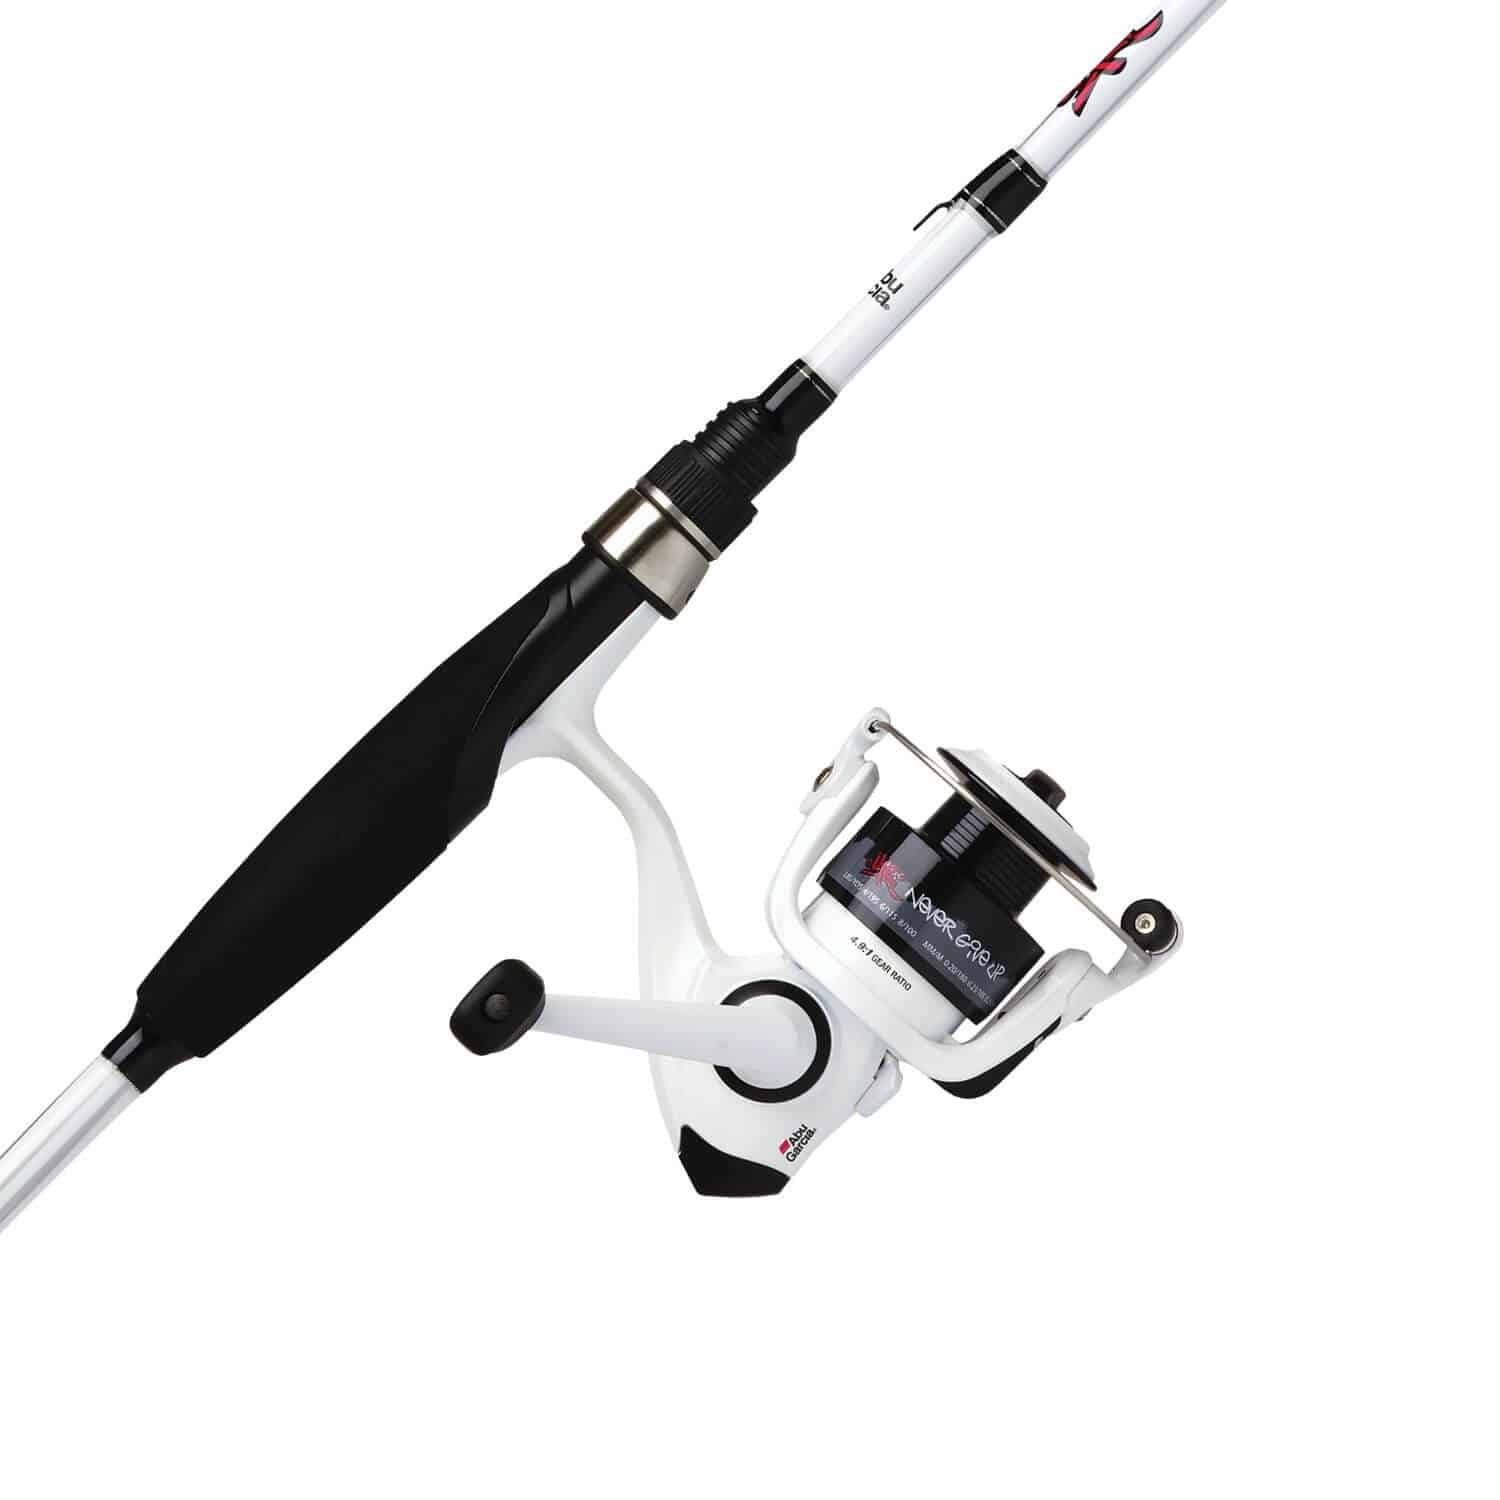 Best spinning rod and reel combo gift fins catcher for Best surf fishing rod and reel combo